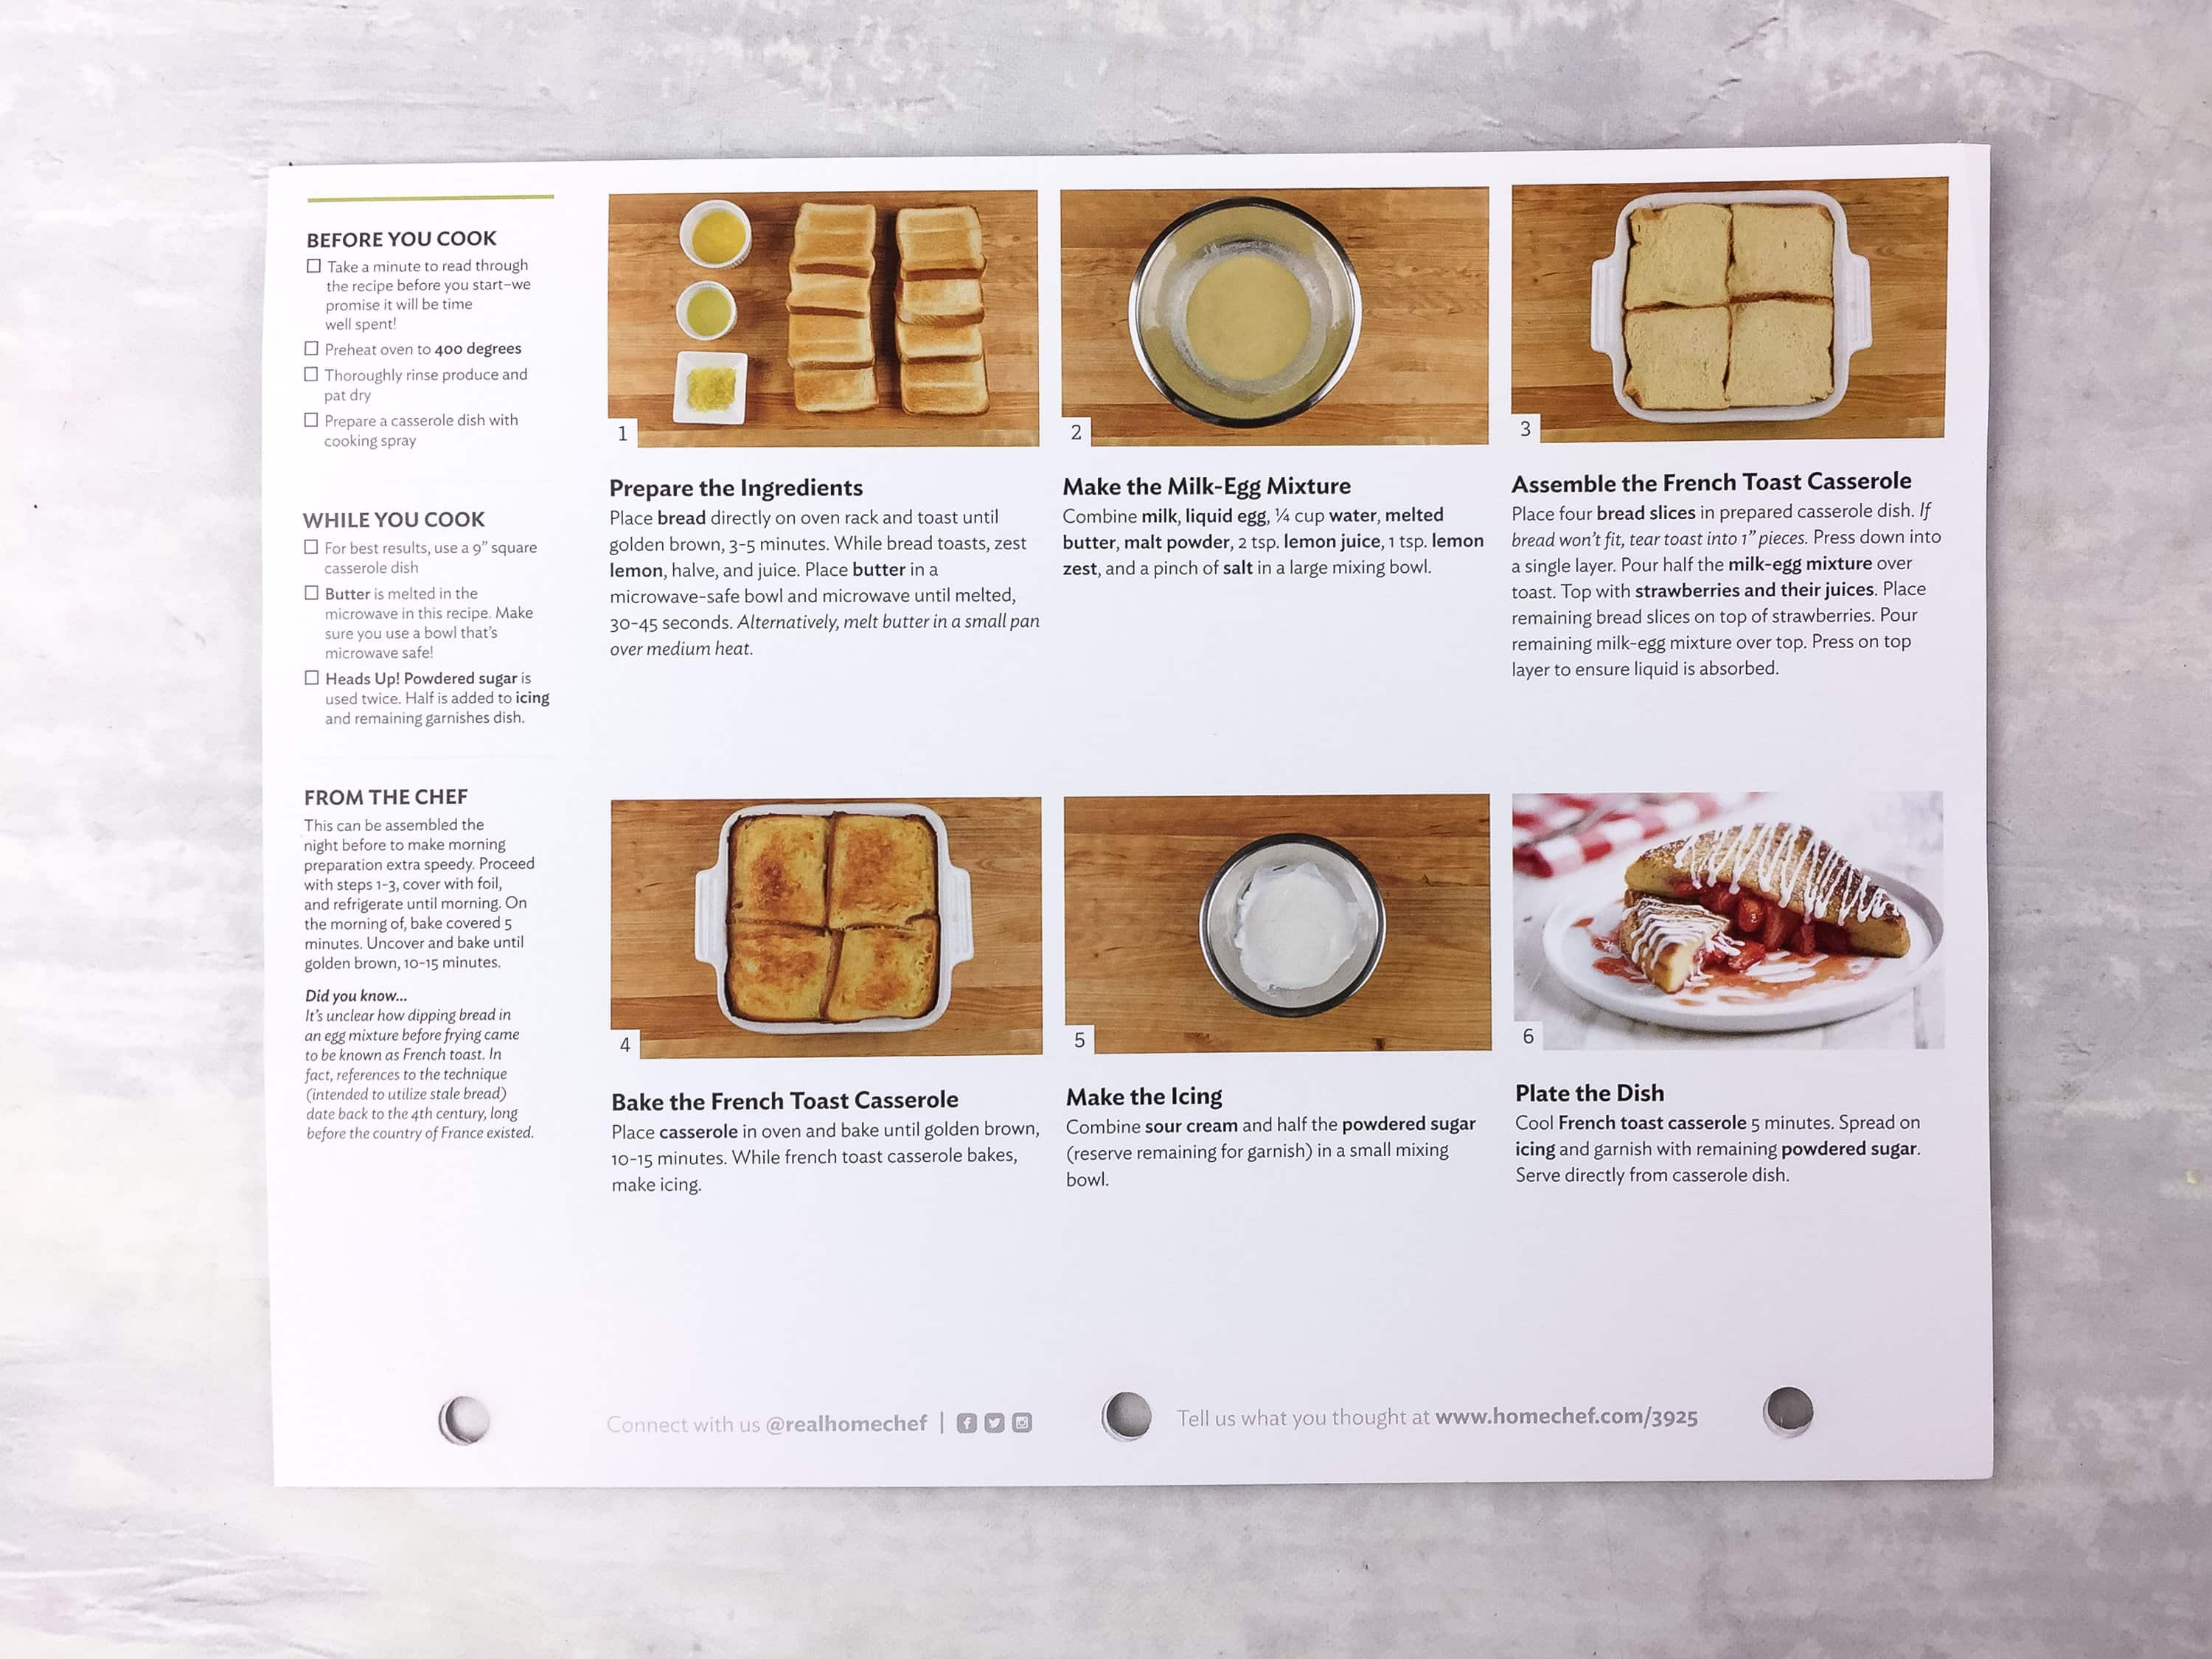 ... complete with pictures and bold-facing of ingredients. The recipes are accompanied by pro-tips and explanations of cooking terminology and techniques.